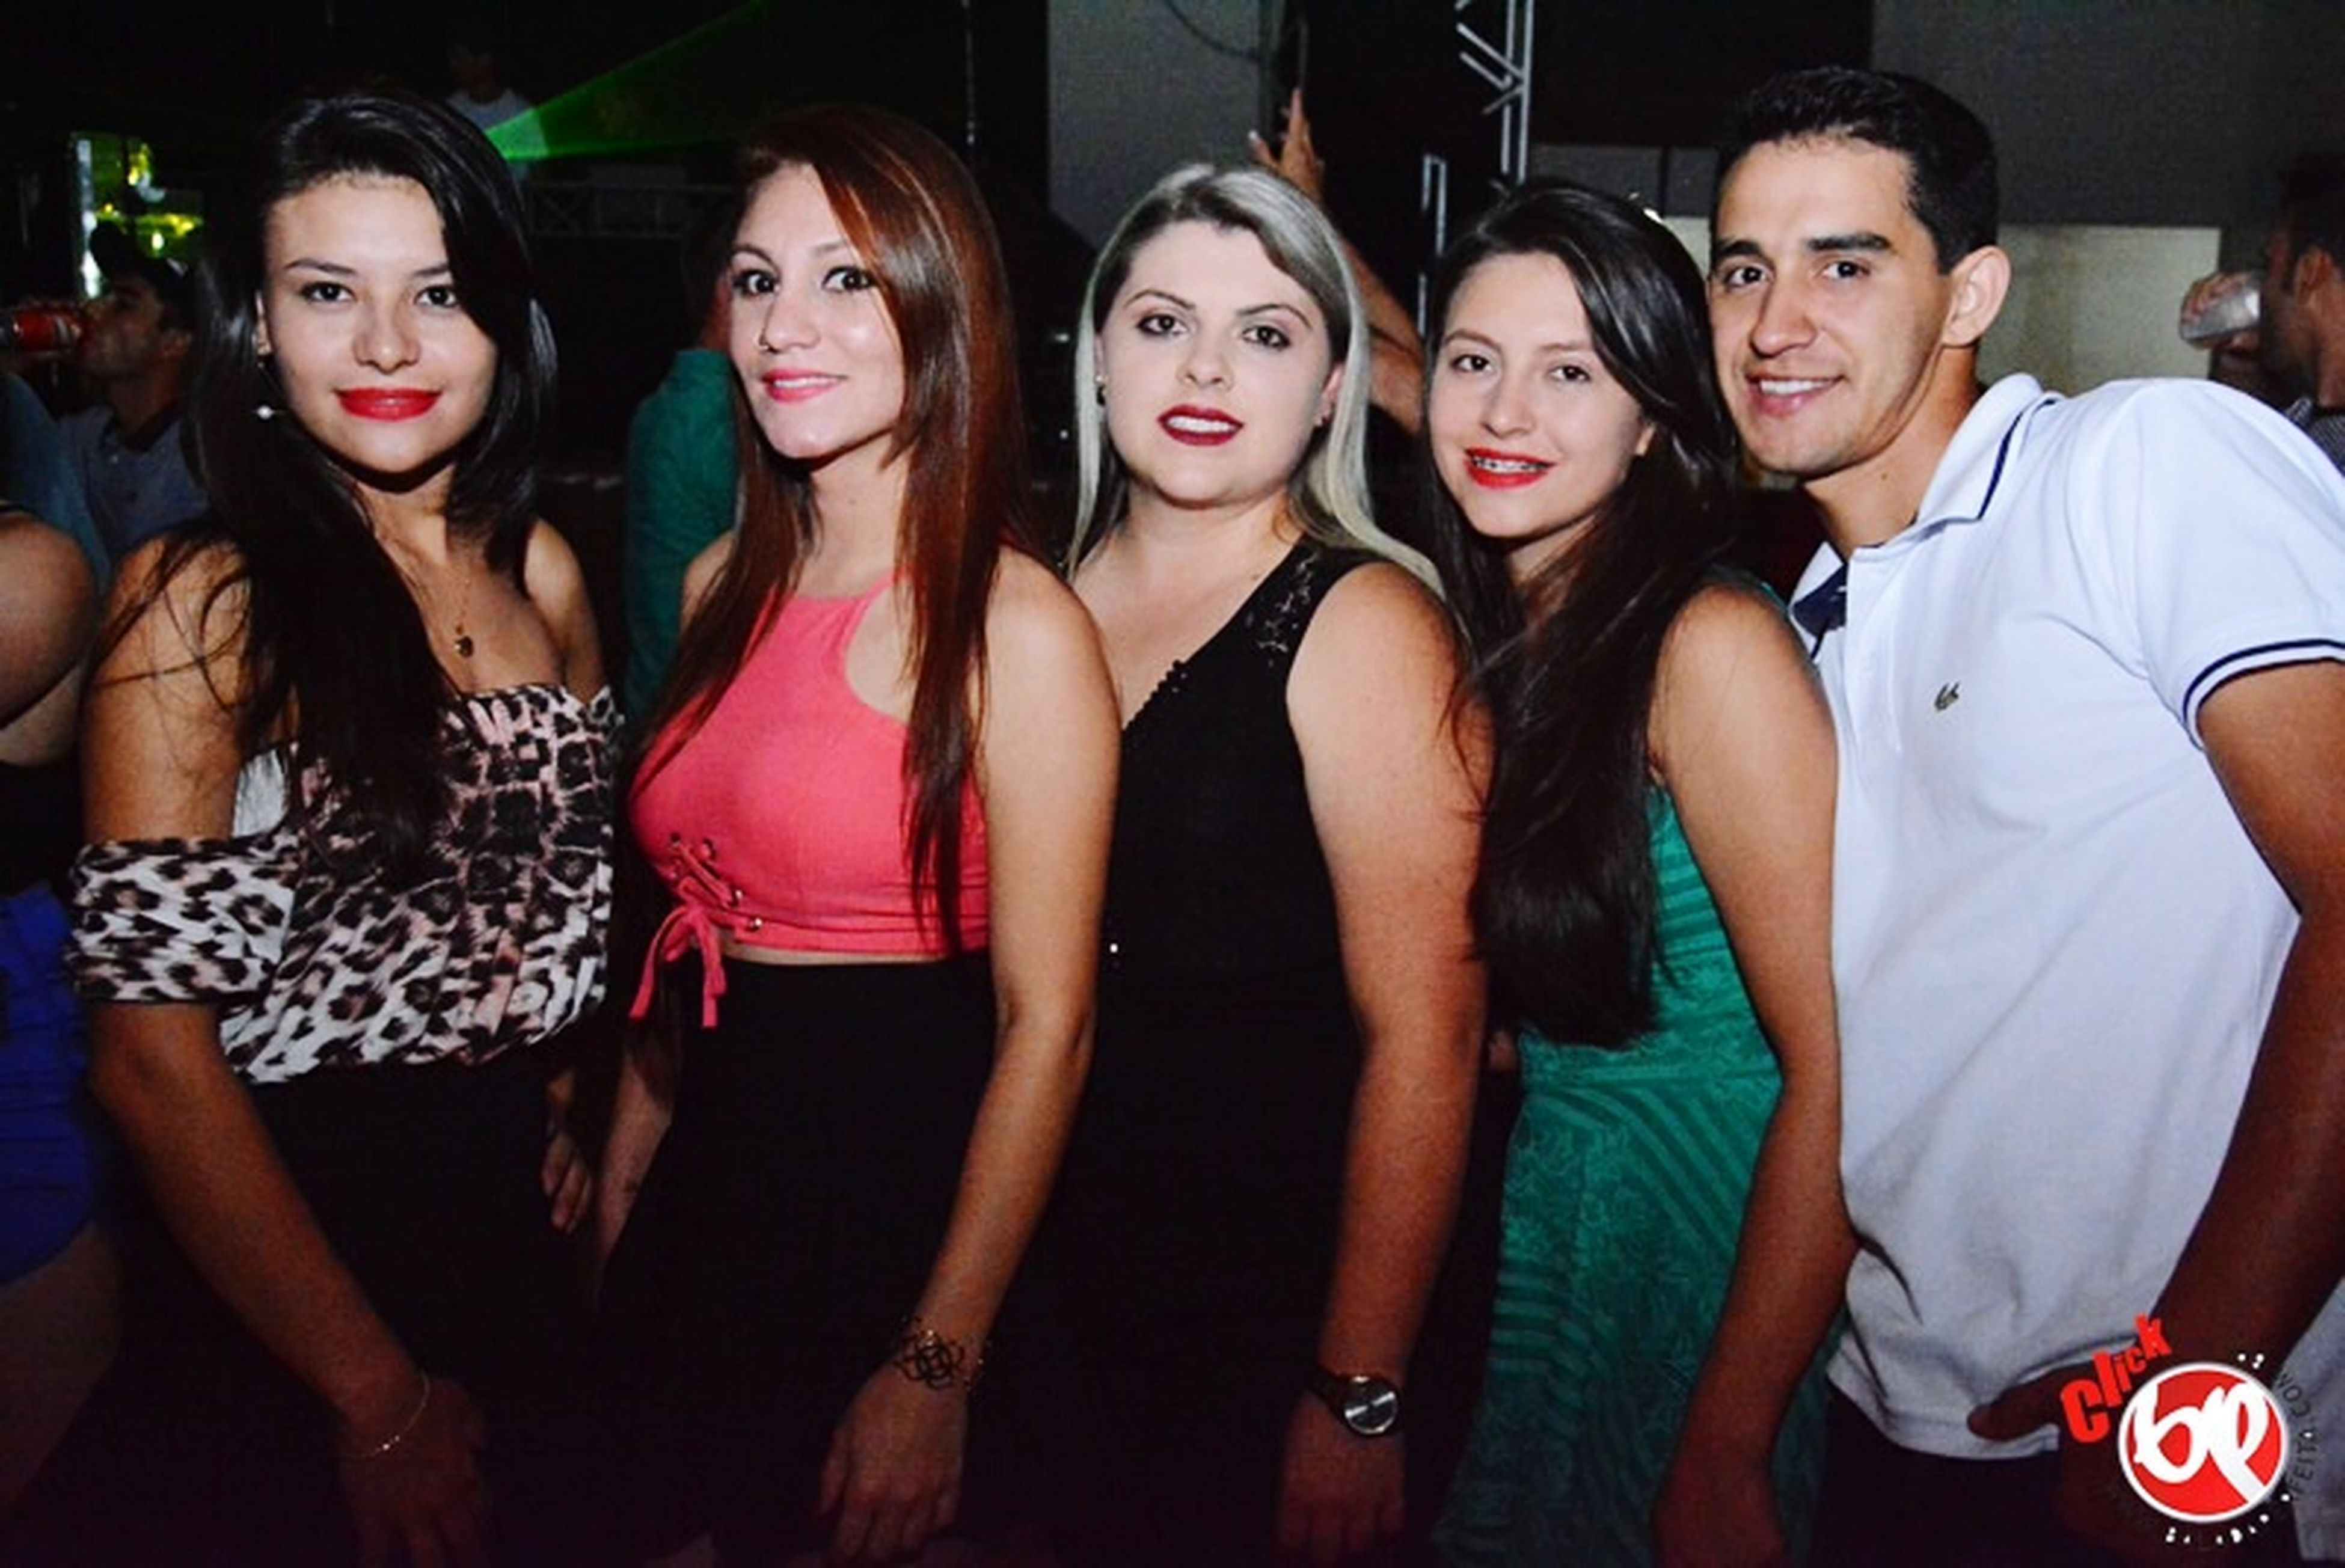 night, nightlife, party - social event, friendship, nightclub, fun, adults only, indoors, young adult, dancing, front view, people, enjoyment, group of people, celebration, clubbing, cheerful, ladies' night, only women, puckering, happiness, adult, togetherness, blowing a kiss, alcohol, happy hour